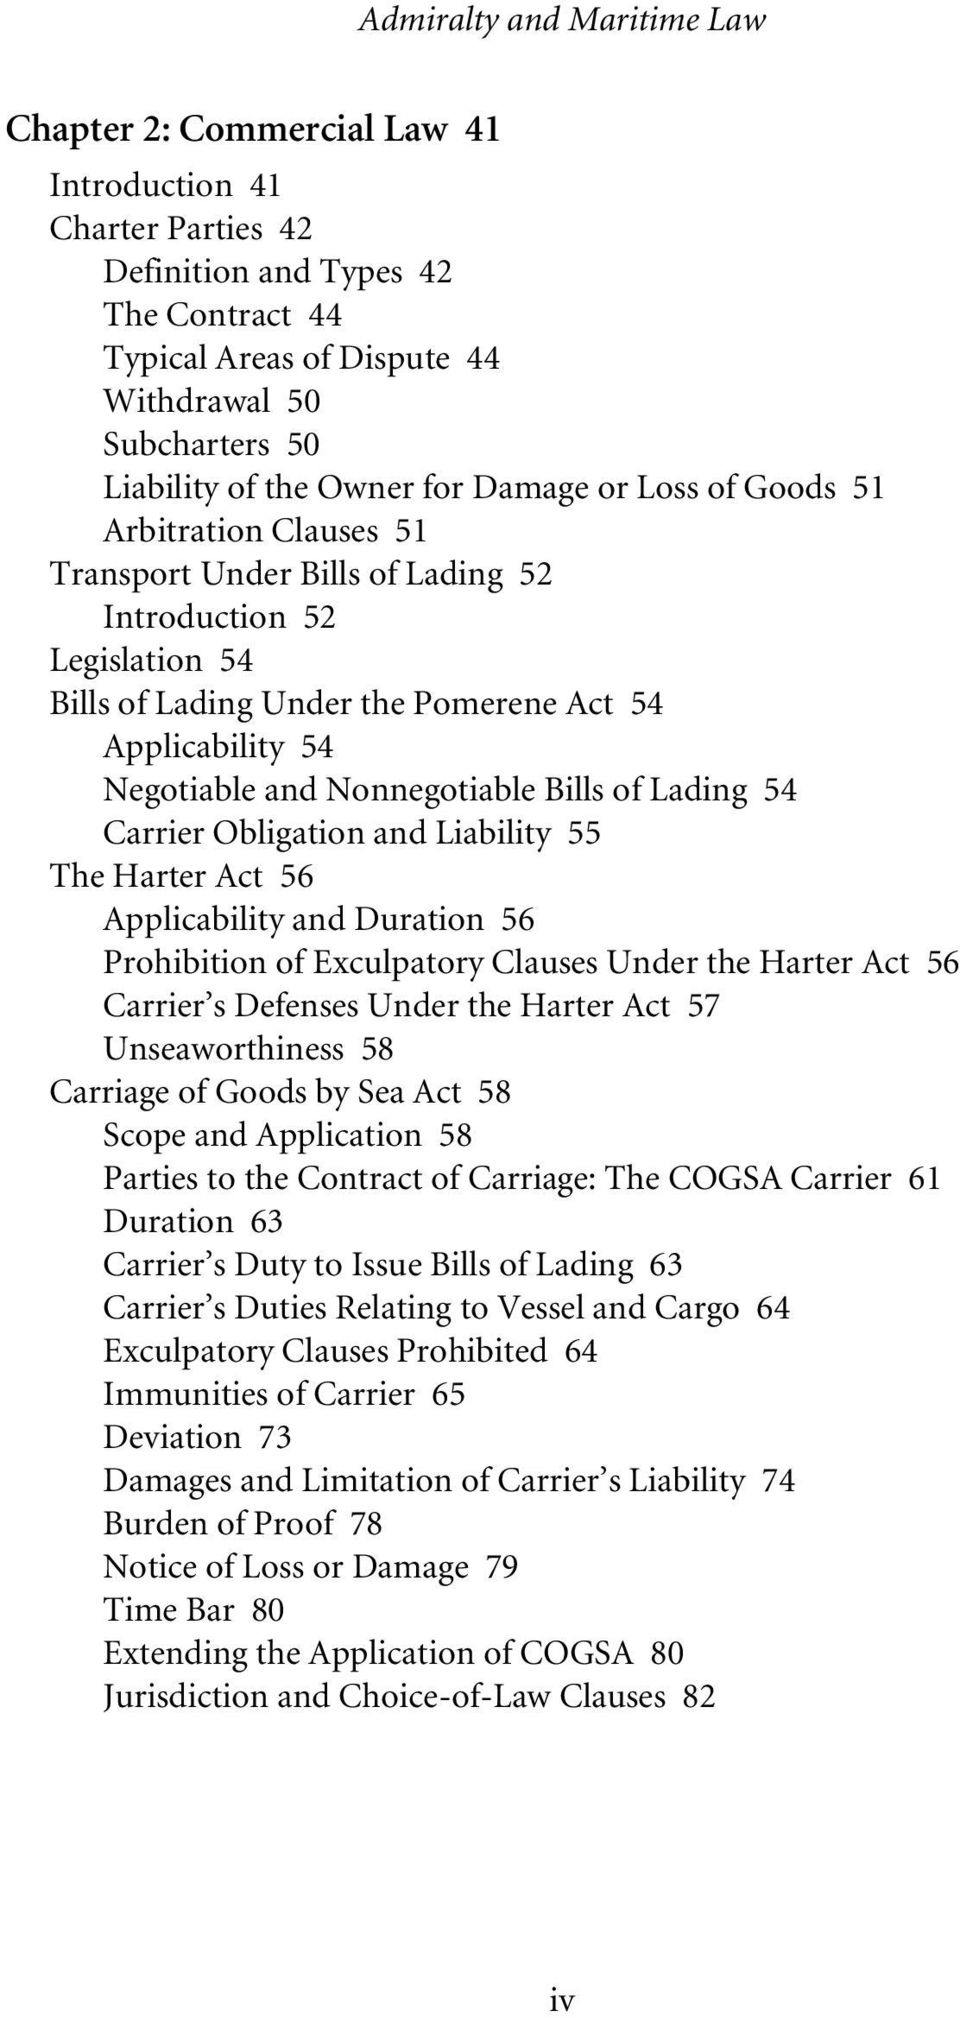 Negotiable and Nonnegotiable Bills of Lading 54 Carrier Obligation and Liability 55 The Harter Act 56 Applicability and Duration 56 Prohibition of Exculpatory Clauses Under the Harter Act 56 Carrier